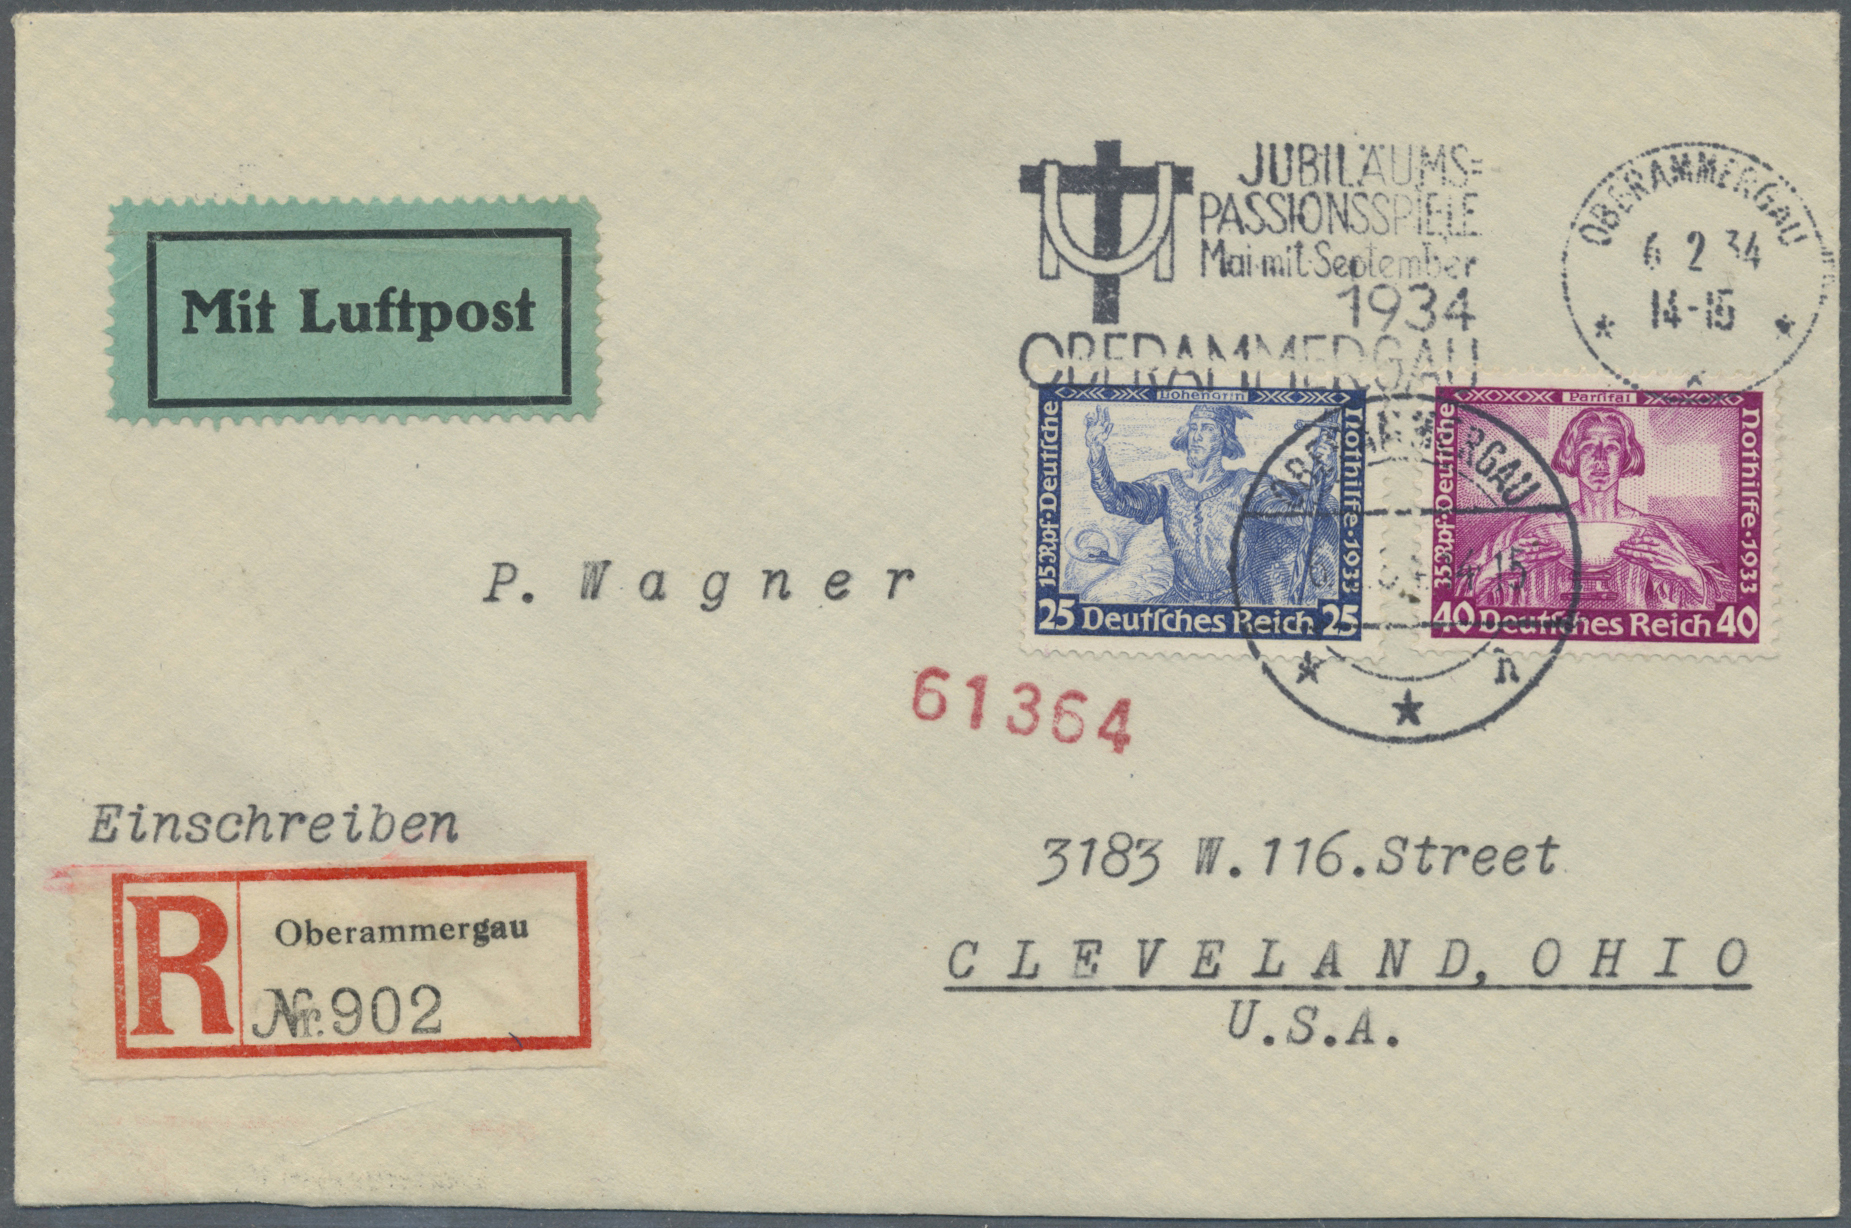 Lot 12133 - thematik: religion / religion  -  Auktionshaus Christoph Gärtner GmbH & Co. KG Single lots Philately Overseas & Europe. Auction #39 Day 4